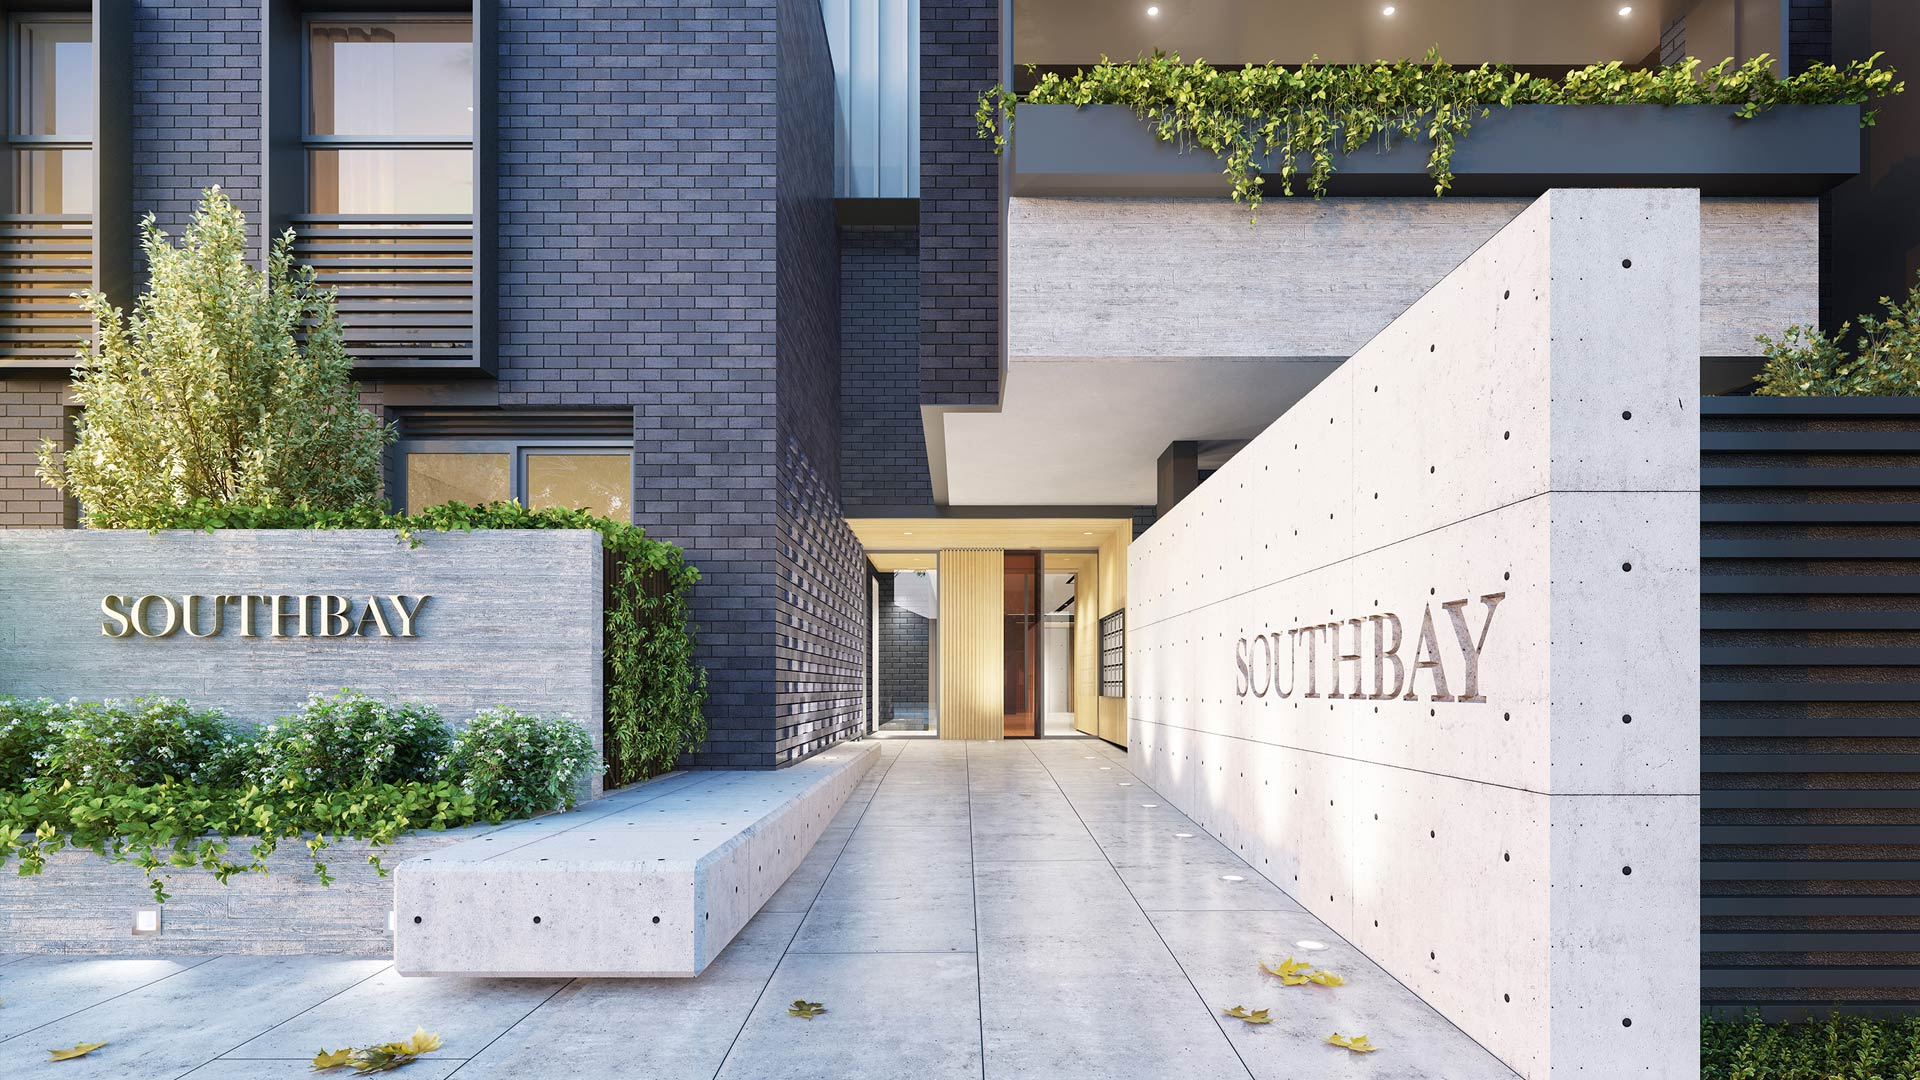 Southbay - Residents' Entry